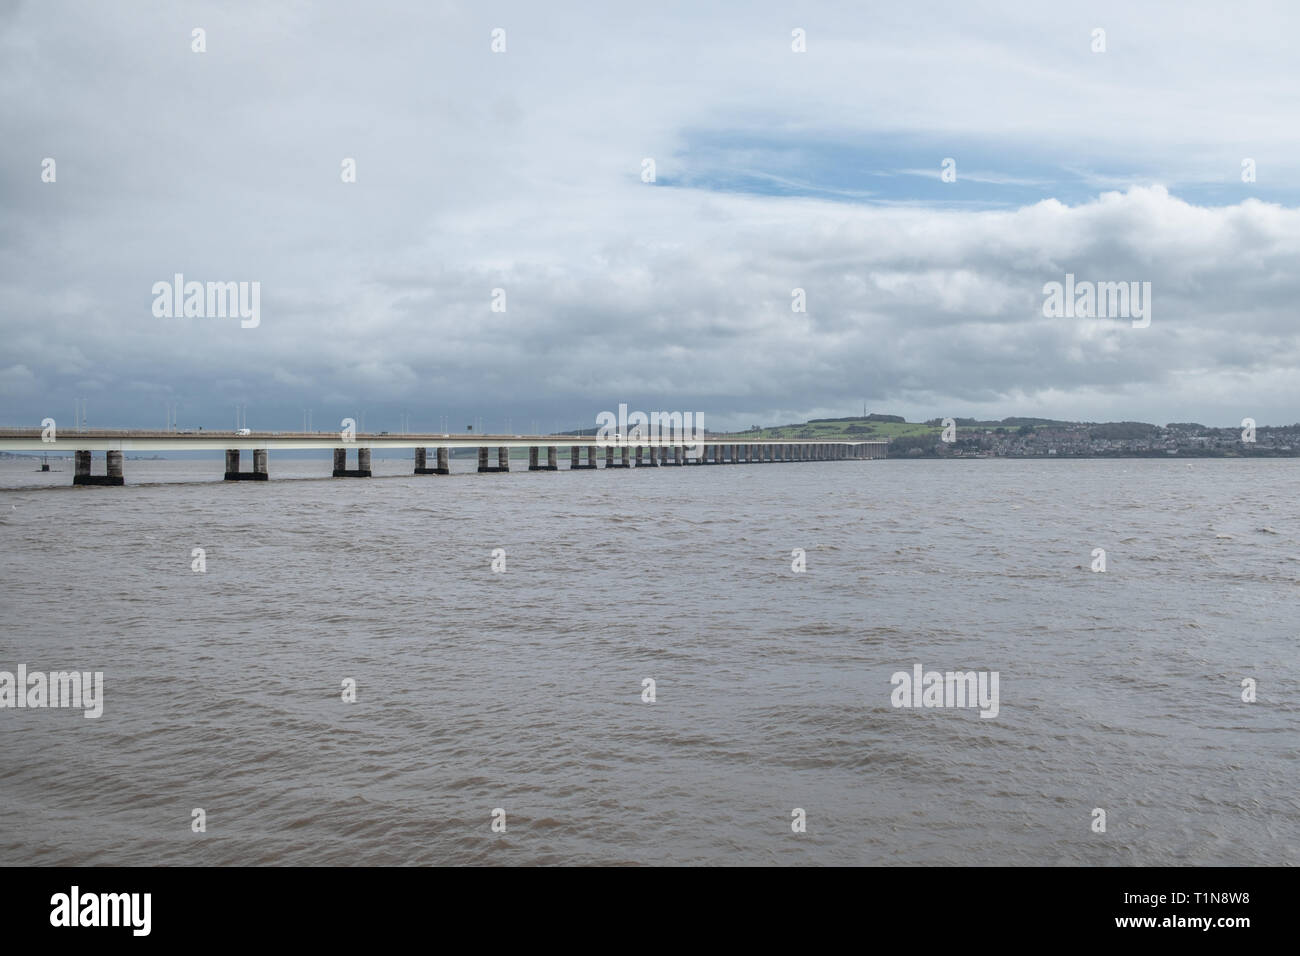 The Tay Road Bridge carries the A92 road across the Firth of Tay from Newport-on-Tay in Fife to Dundee - Stock Image